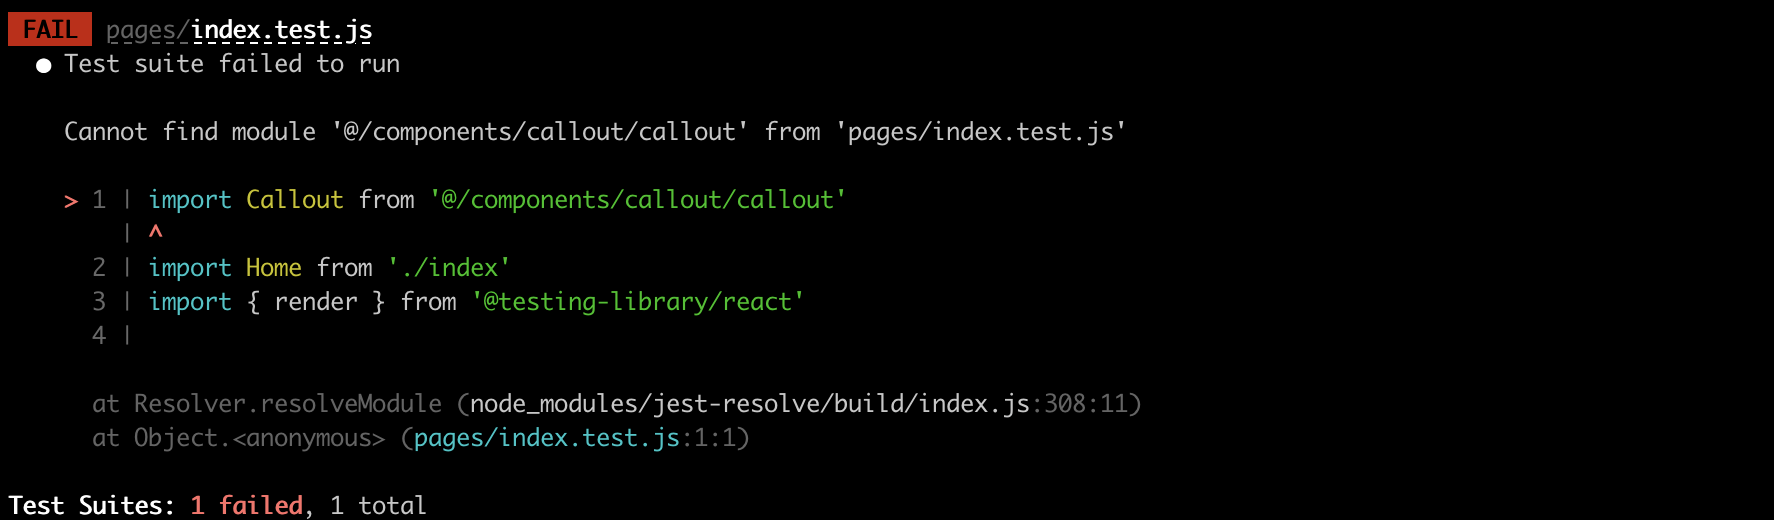 Cannot find module '@/components/callout/callout' from 'pages/index.test.js'